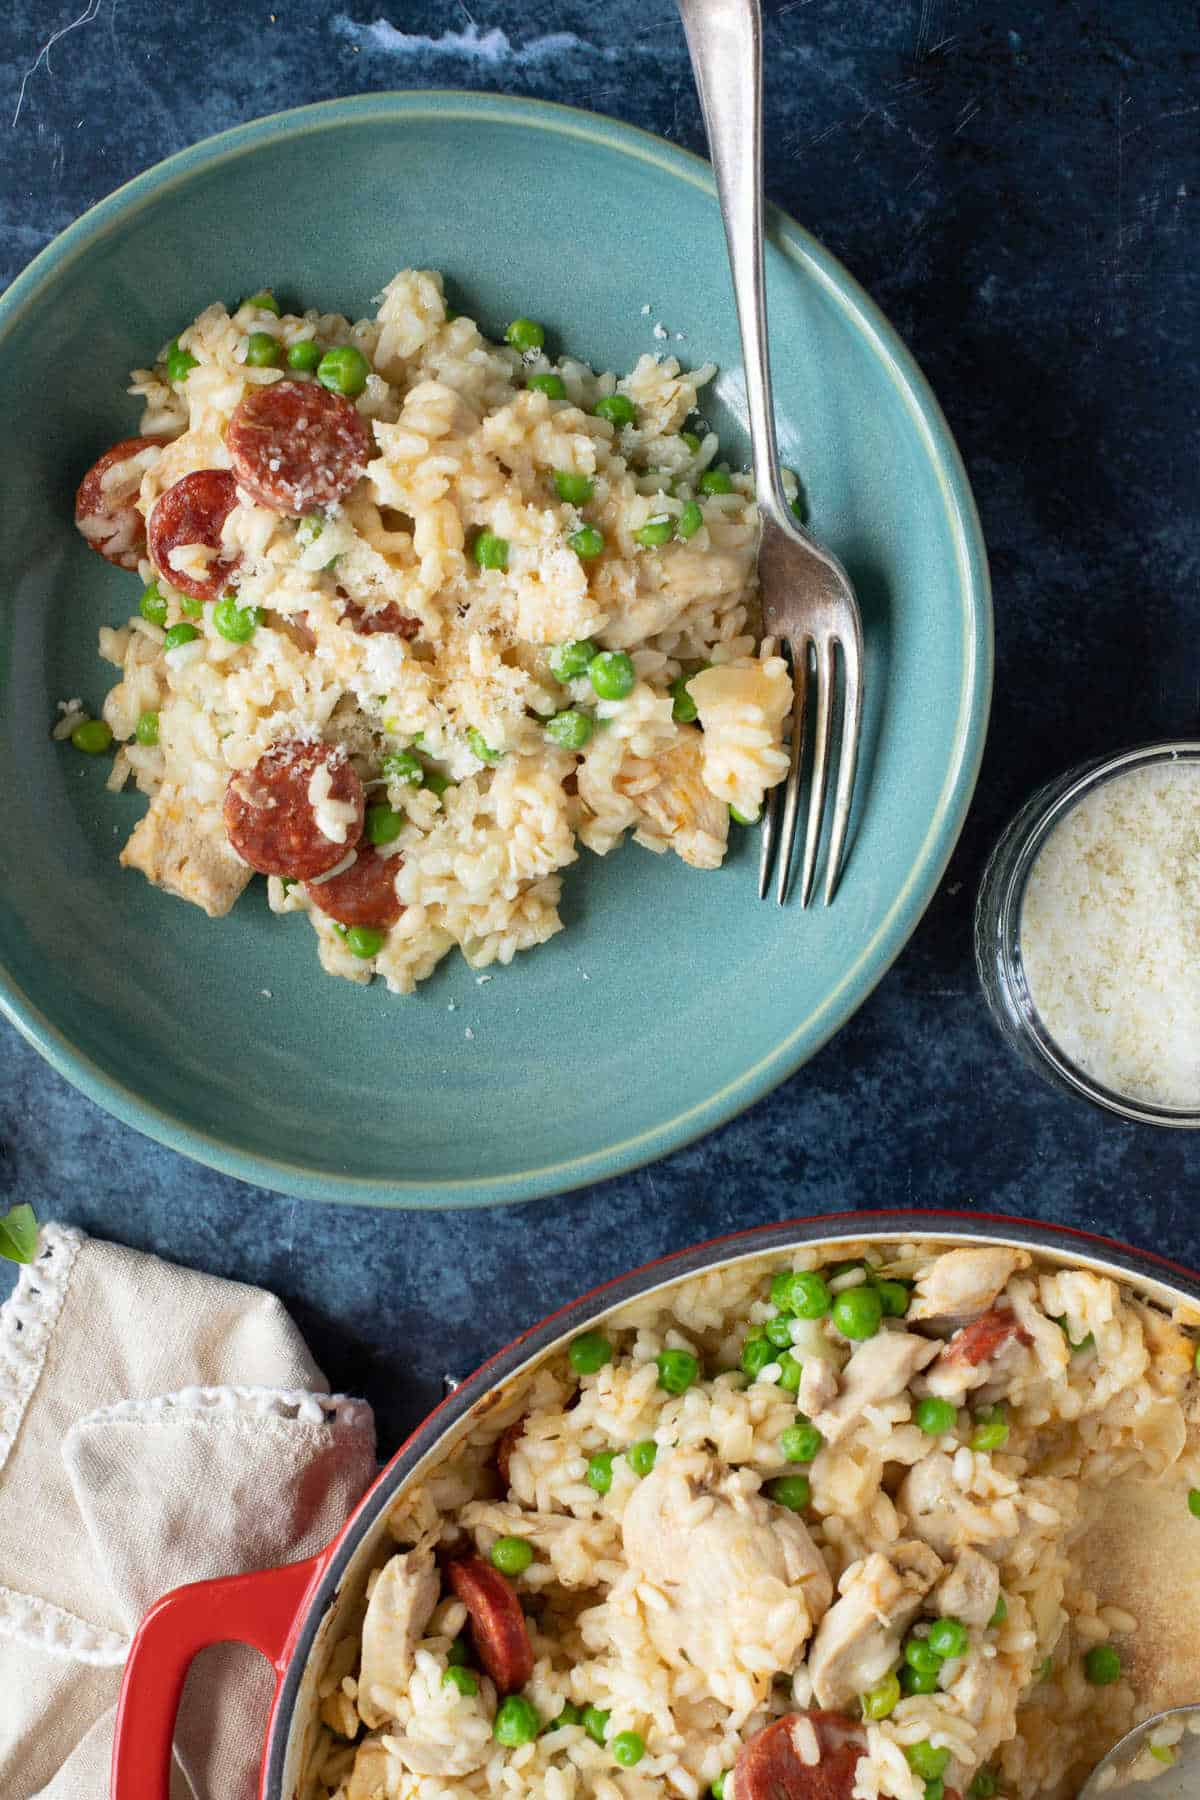 A bowl of oven baked risotto sprinkled with grated Parmesan.